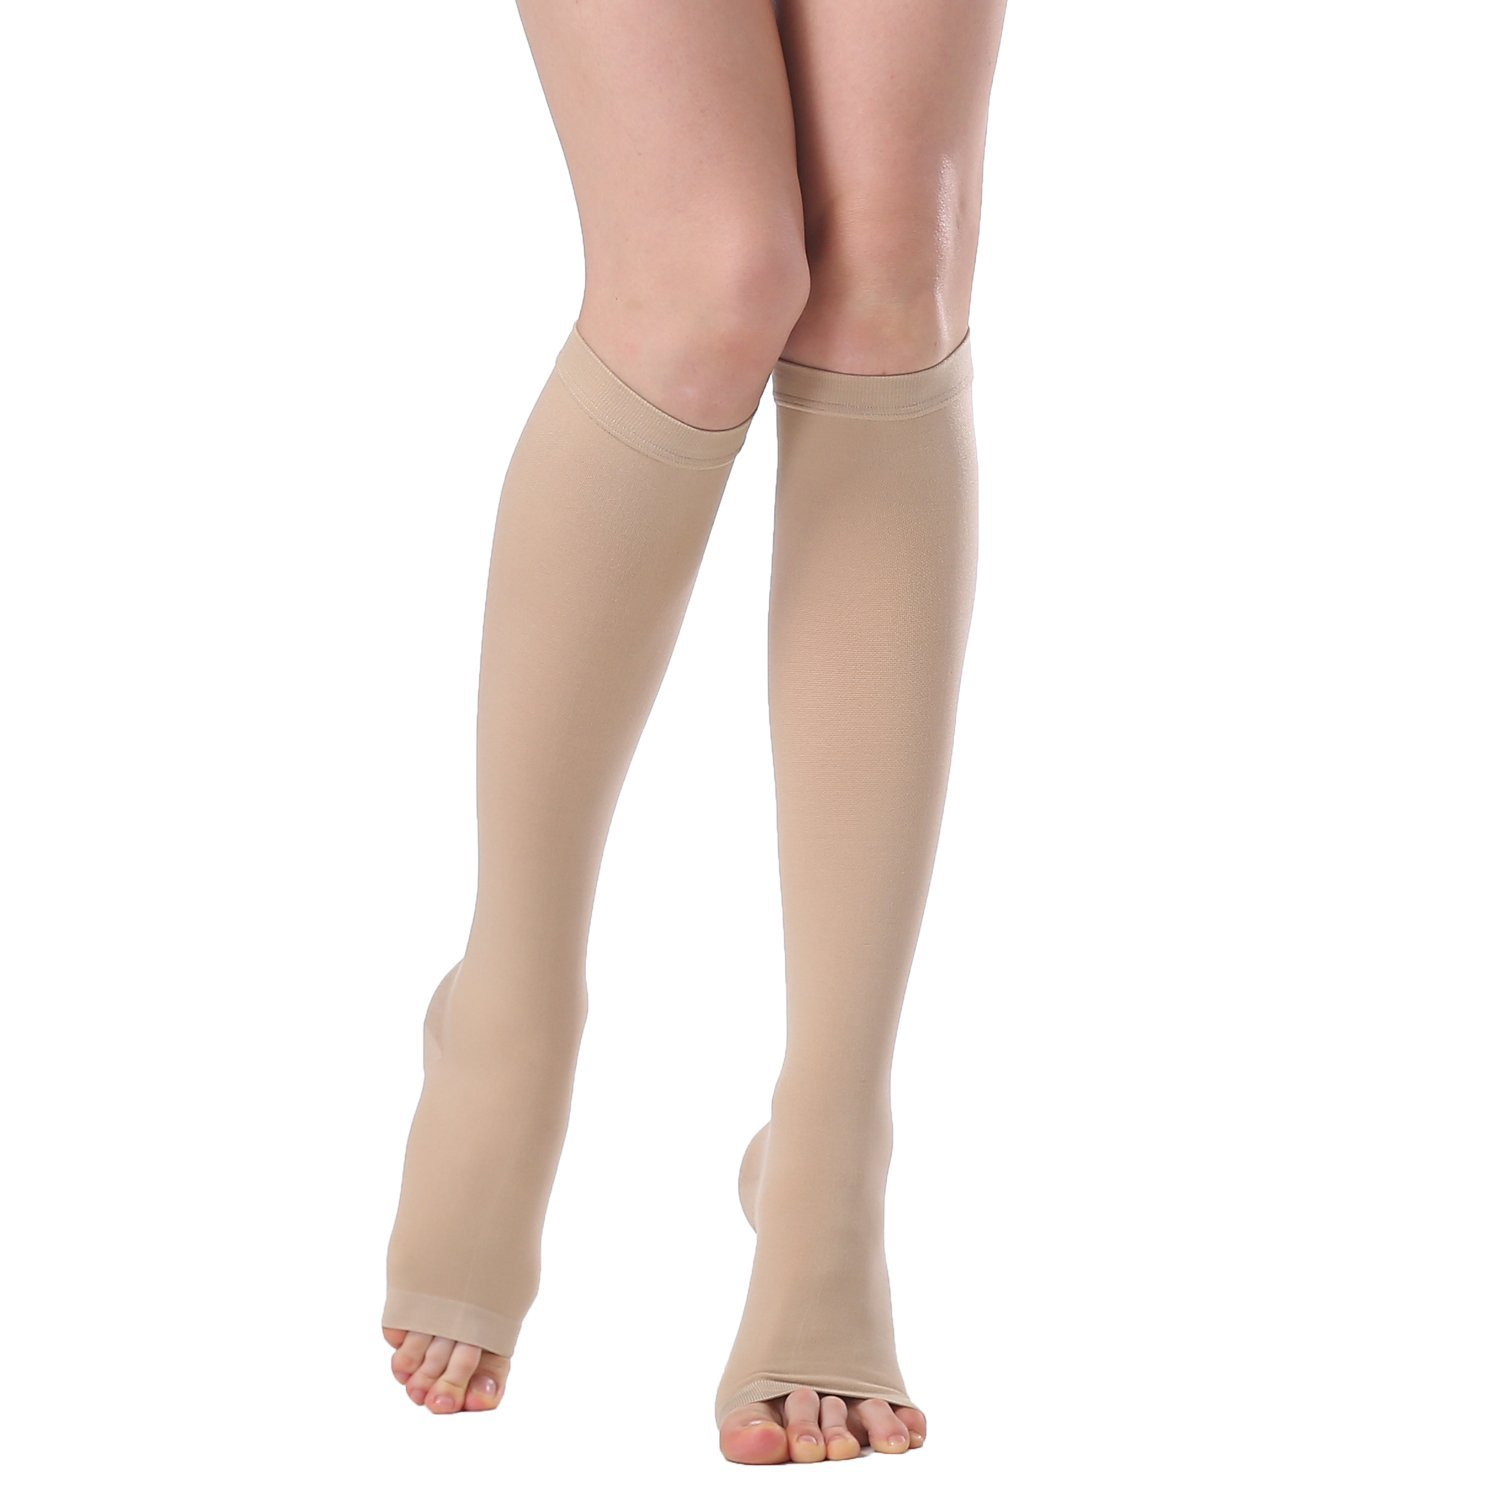 Buy Dr Ice Medical Knee High Open Toe Compression